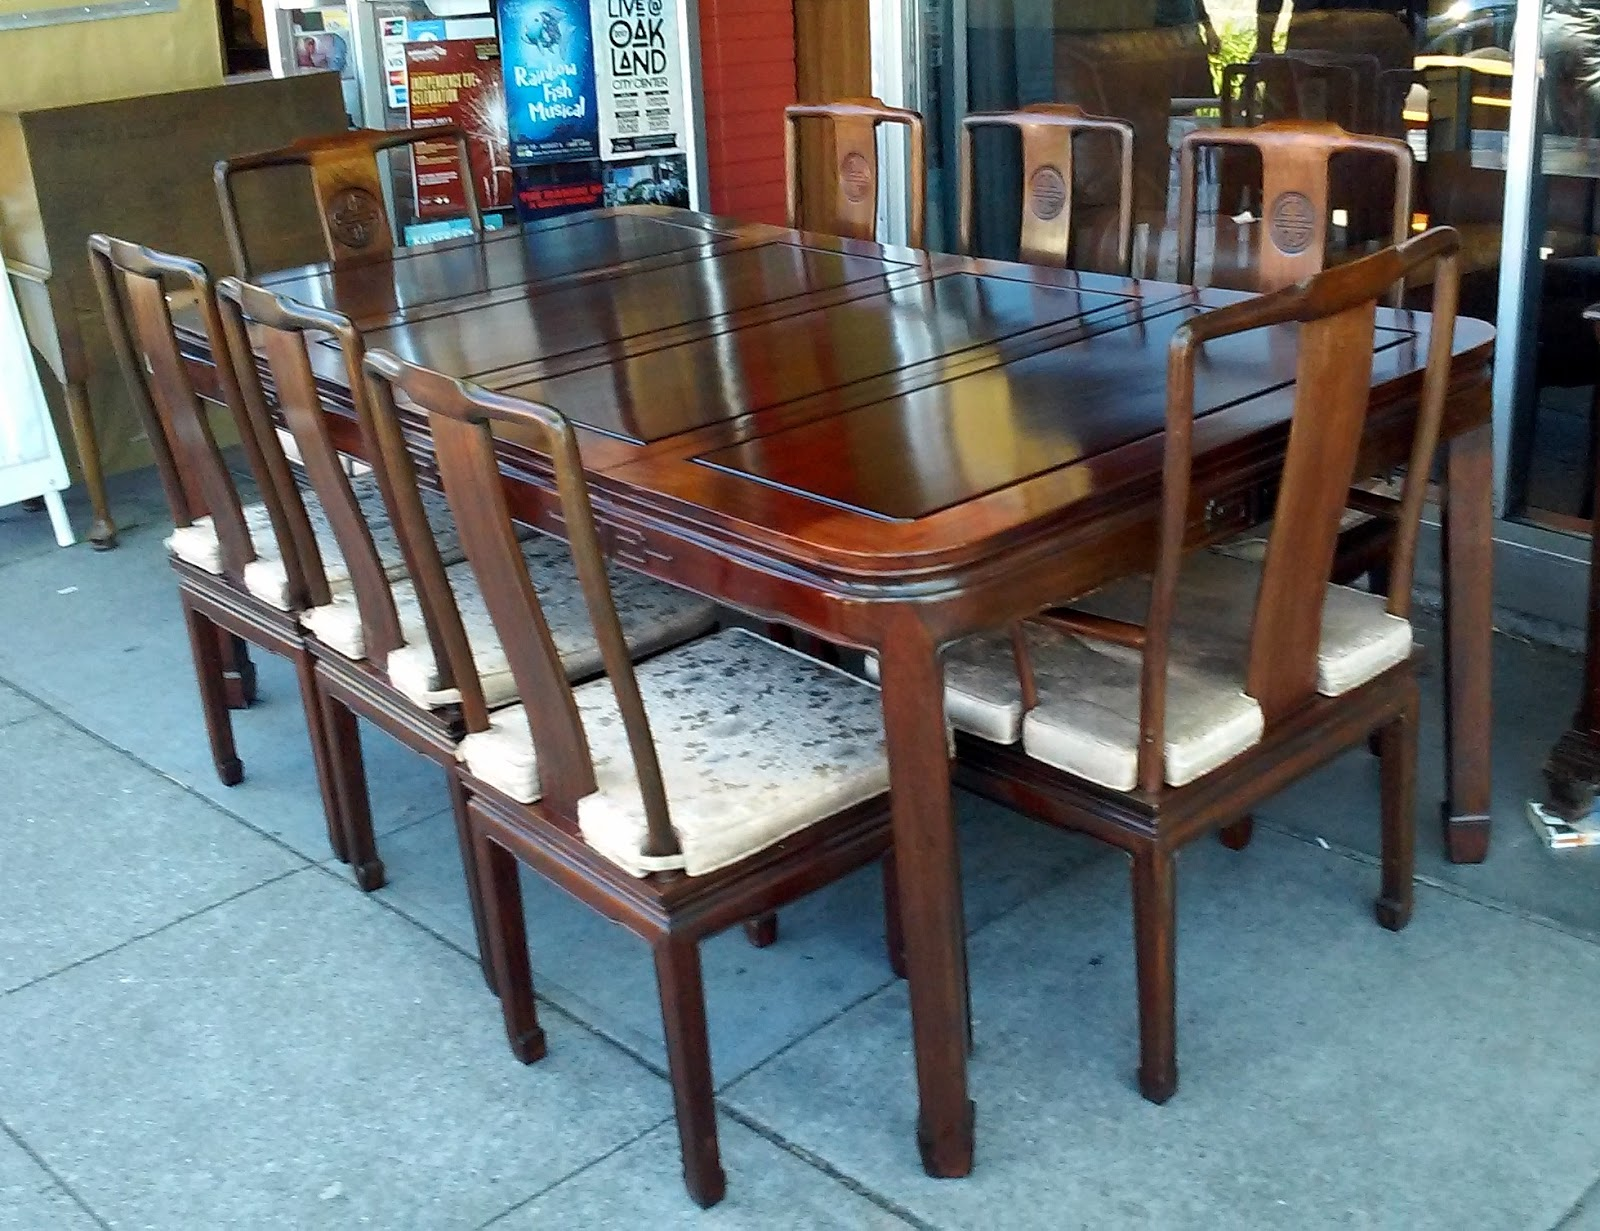 SOLD #1970 Chinese Rosewood Dining Set: Table, 2 Leaves, 8 Chairs   $495